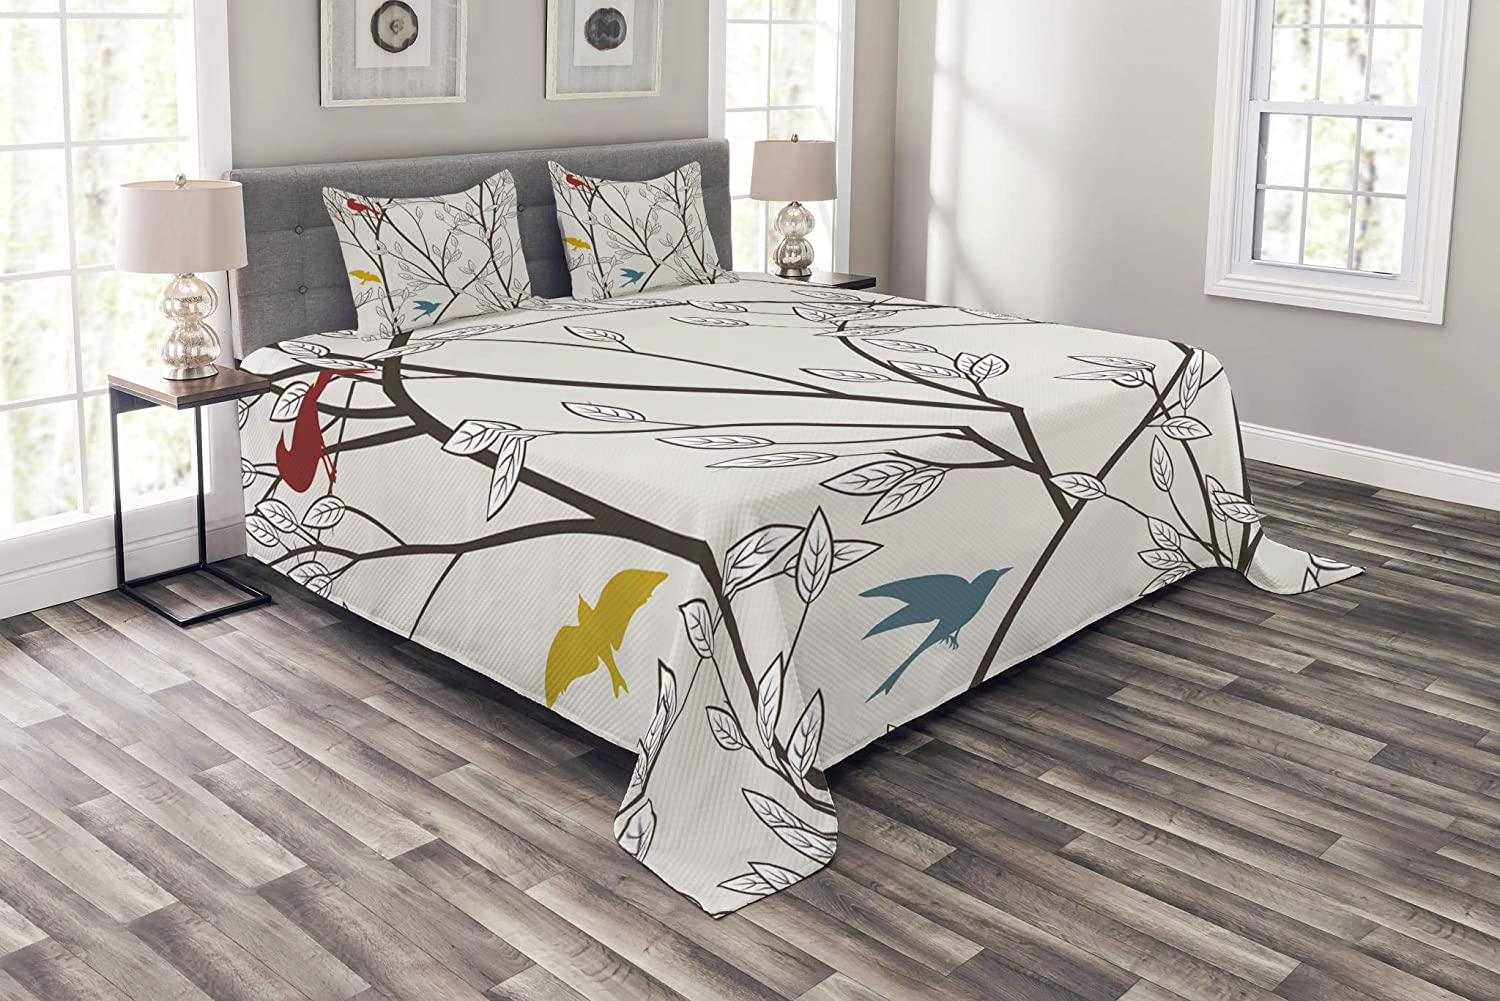 Ambesonne Nature Bedspread, Birds Wildlife Cartoon Like Image with Tree Leaf Art Print, Decorative Quilted 3 Piece Coverlet Set with 2 Pillow Shams, Queen Size, Mustard Maroon